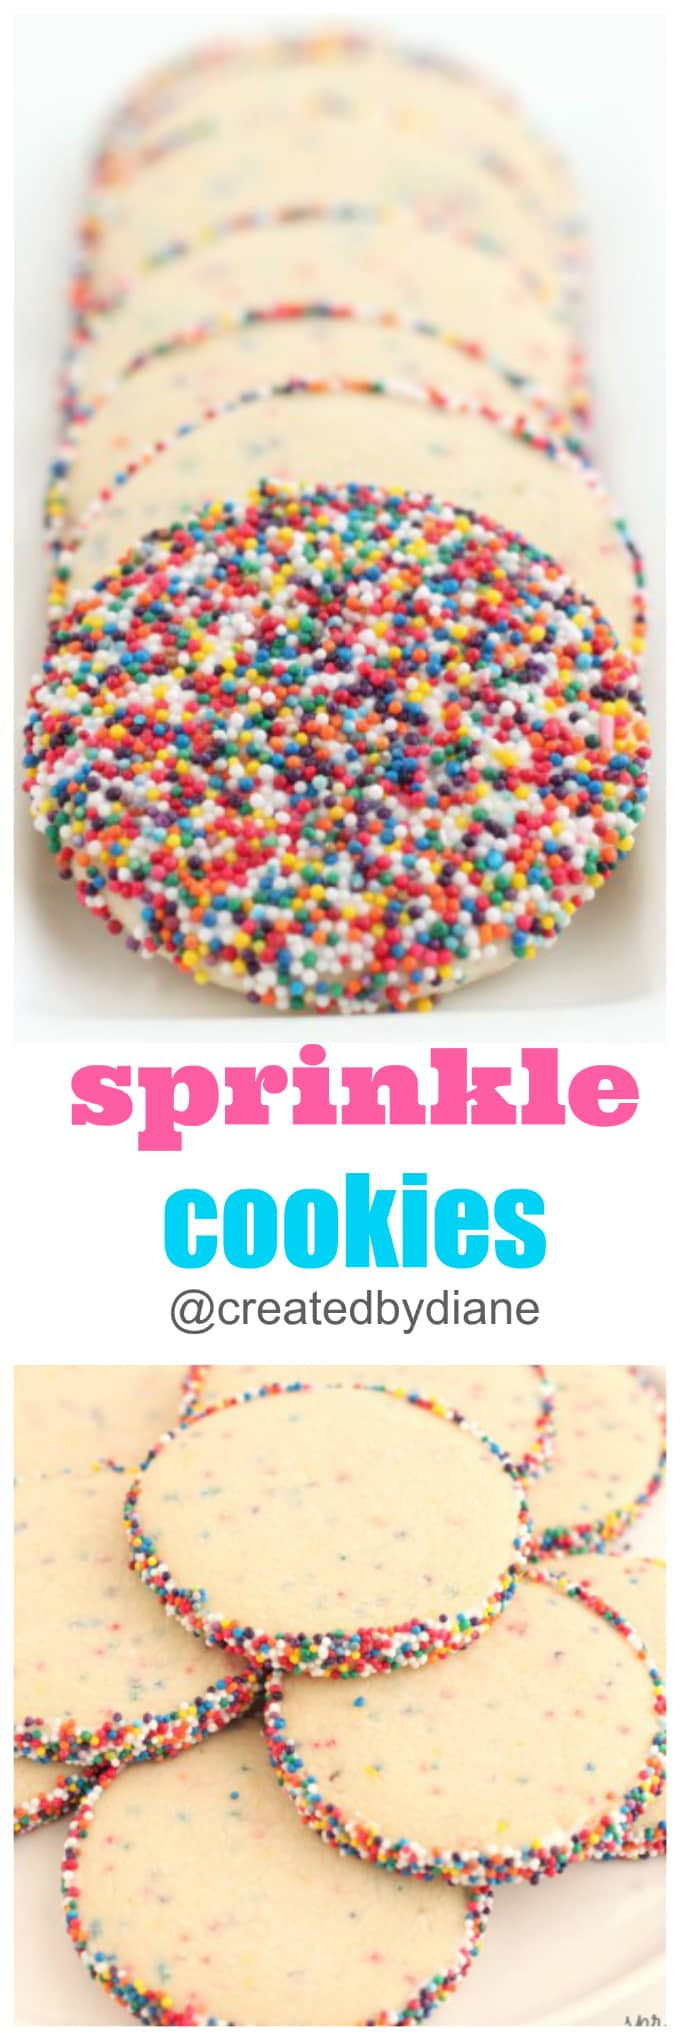 colored sprinkle cookies with rainbow nonpareils @createdbydiane